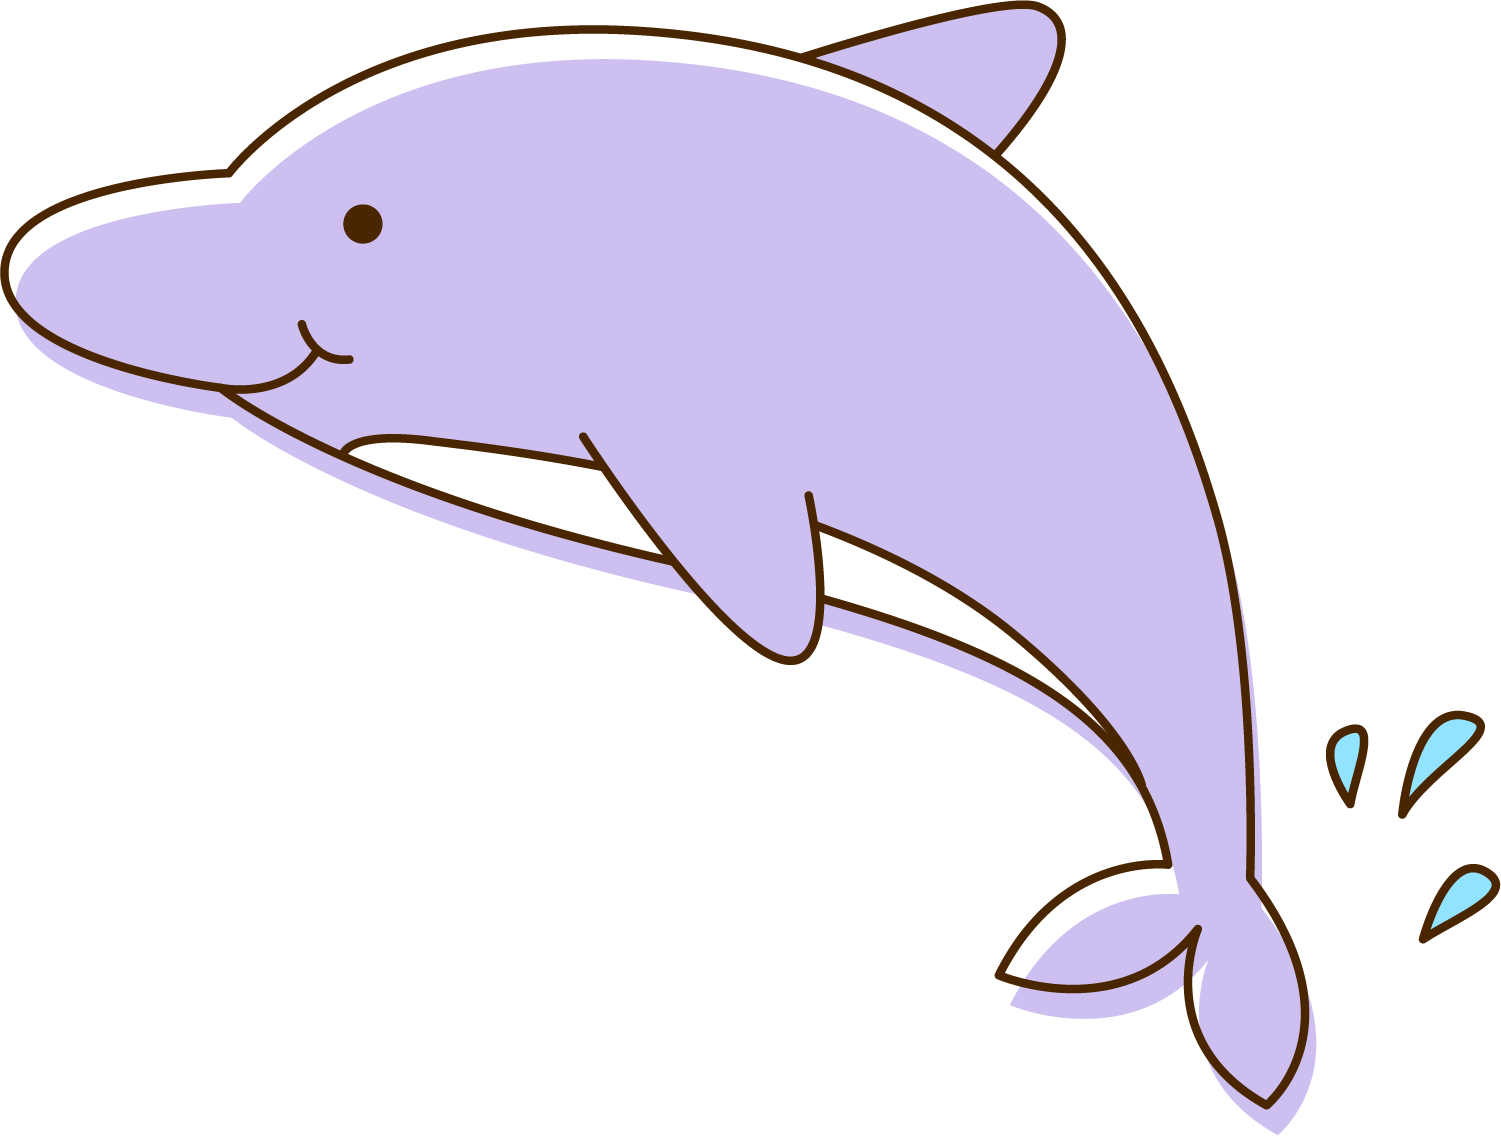 Bottlenose at getdrawings com. Clipart dolphin friendly dolphin